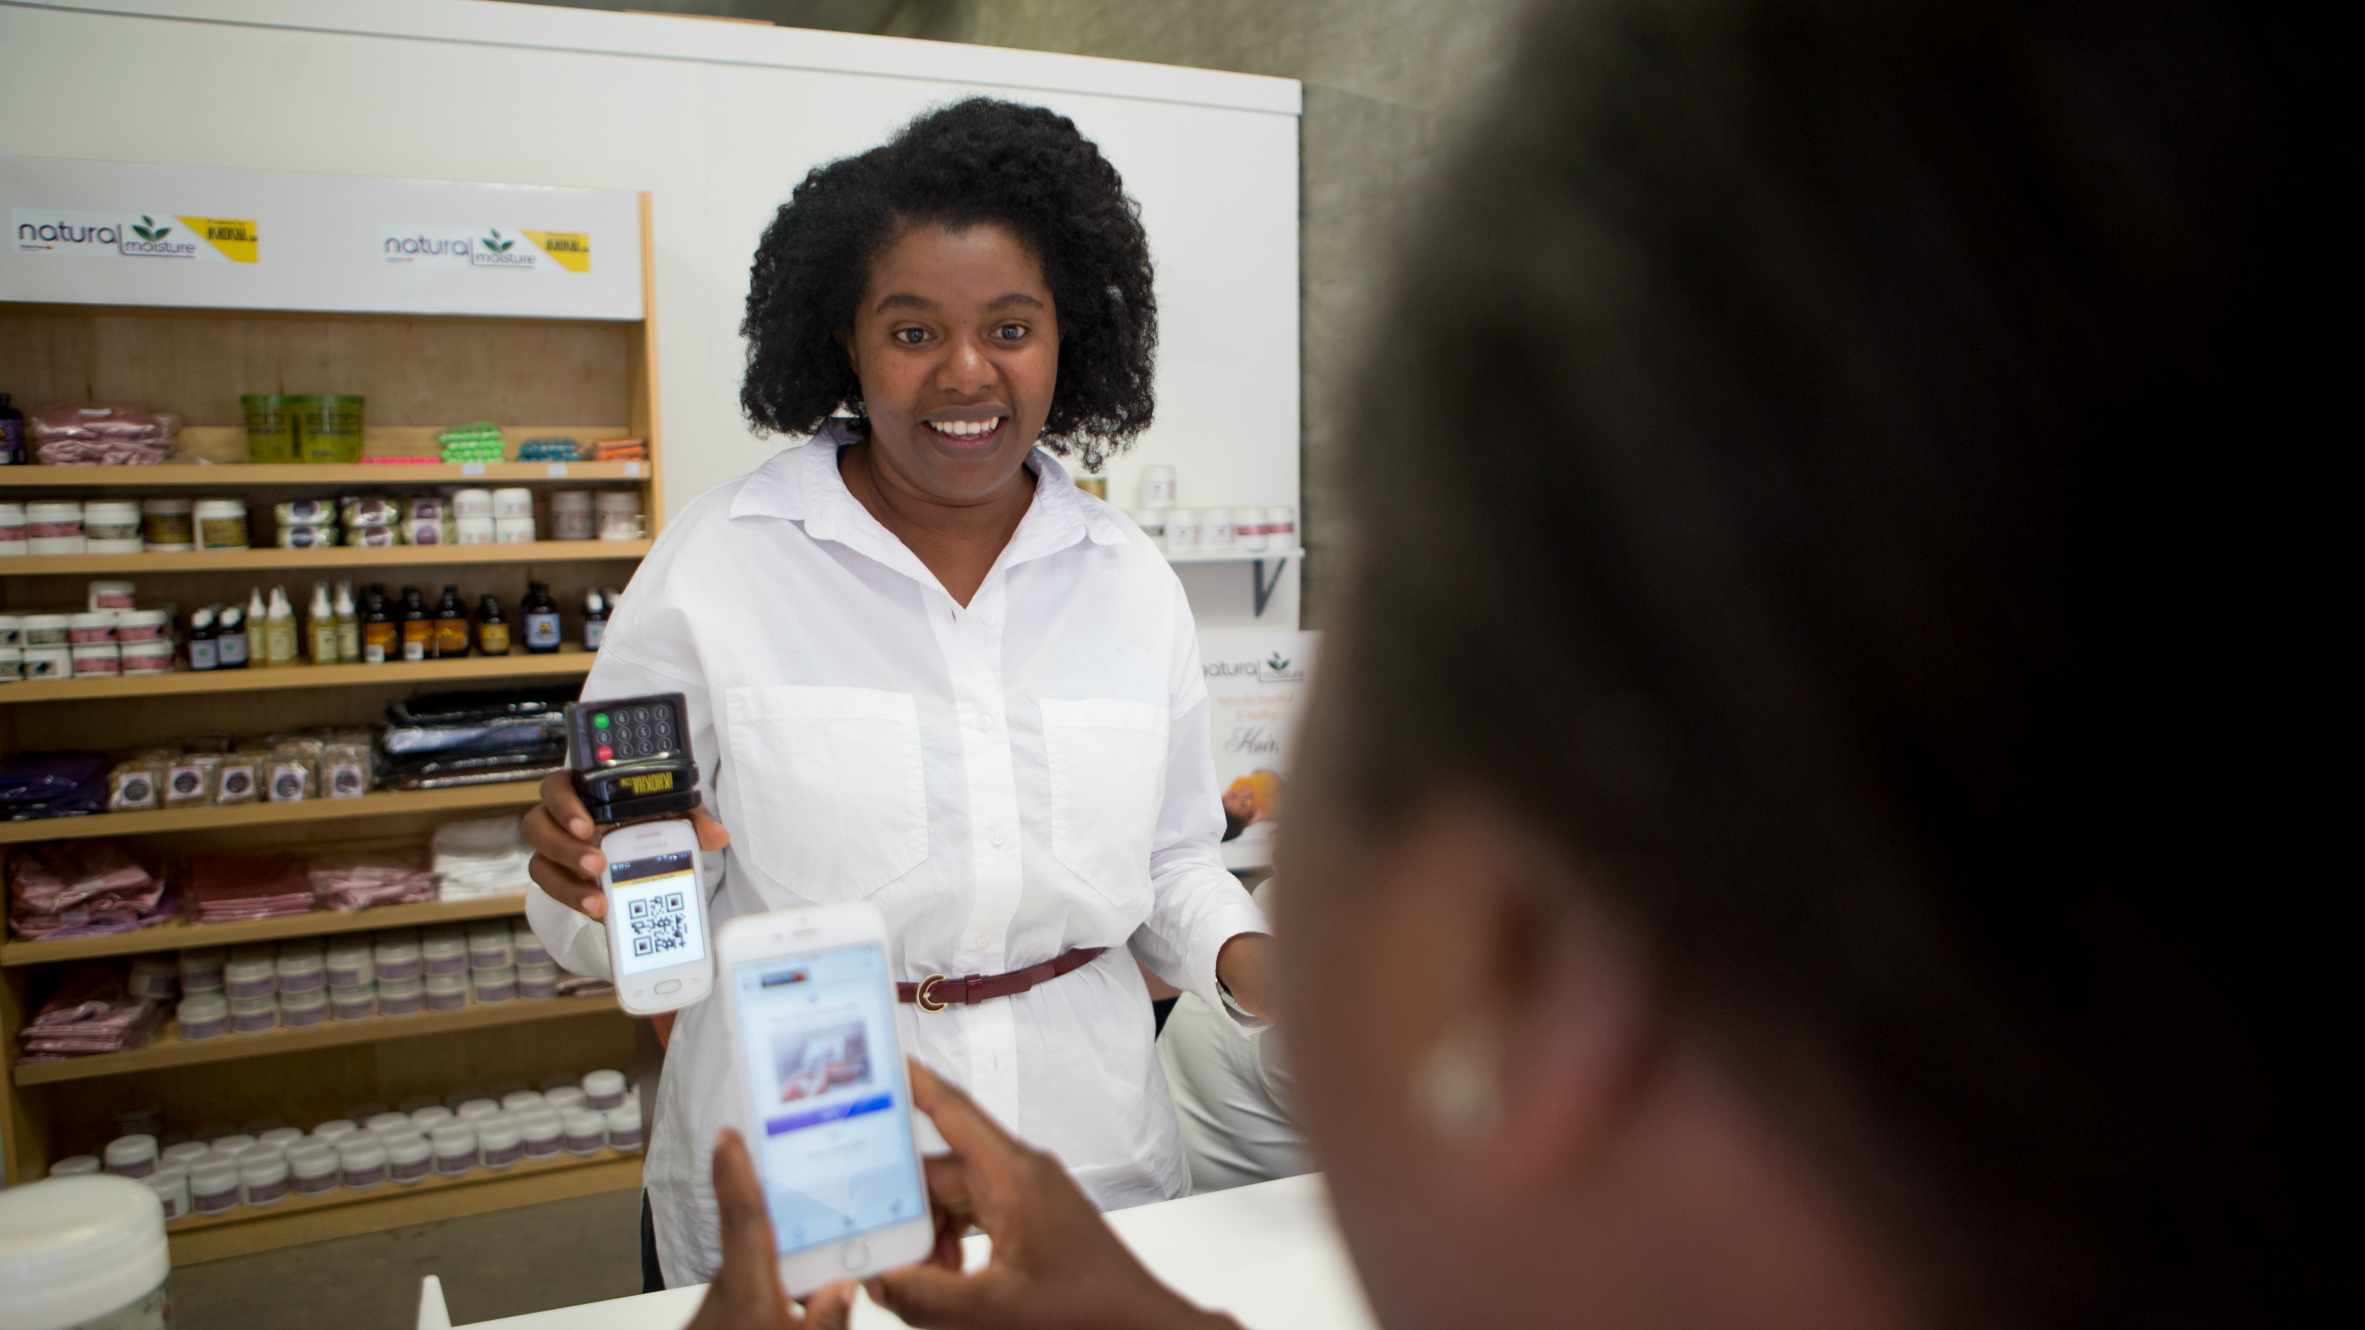 Small business owners like Ruth Mafupa, owner of Natural Moisture in Johanneburg, can now accept card payments on the iKhokha device connected to their smartphones, as well as online and in-store digital MasterPass payments.